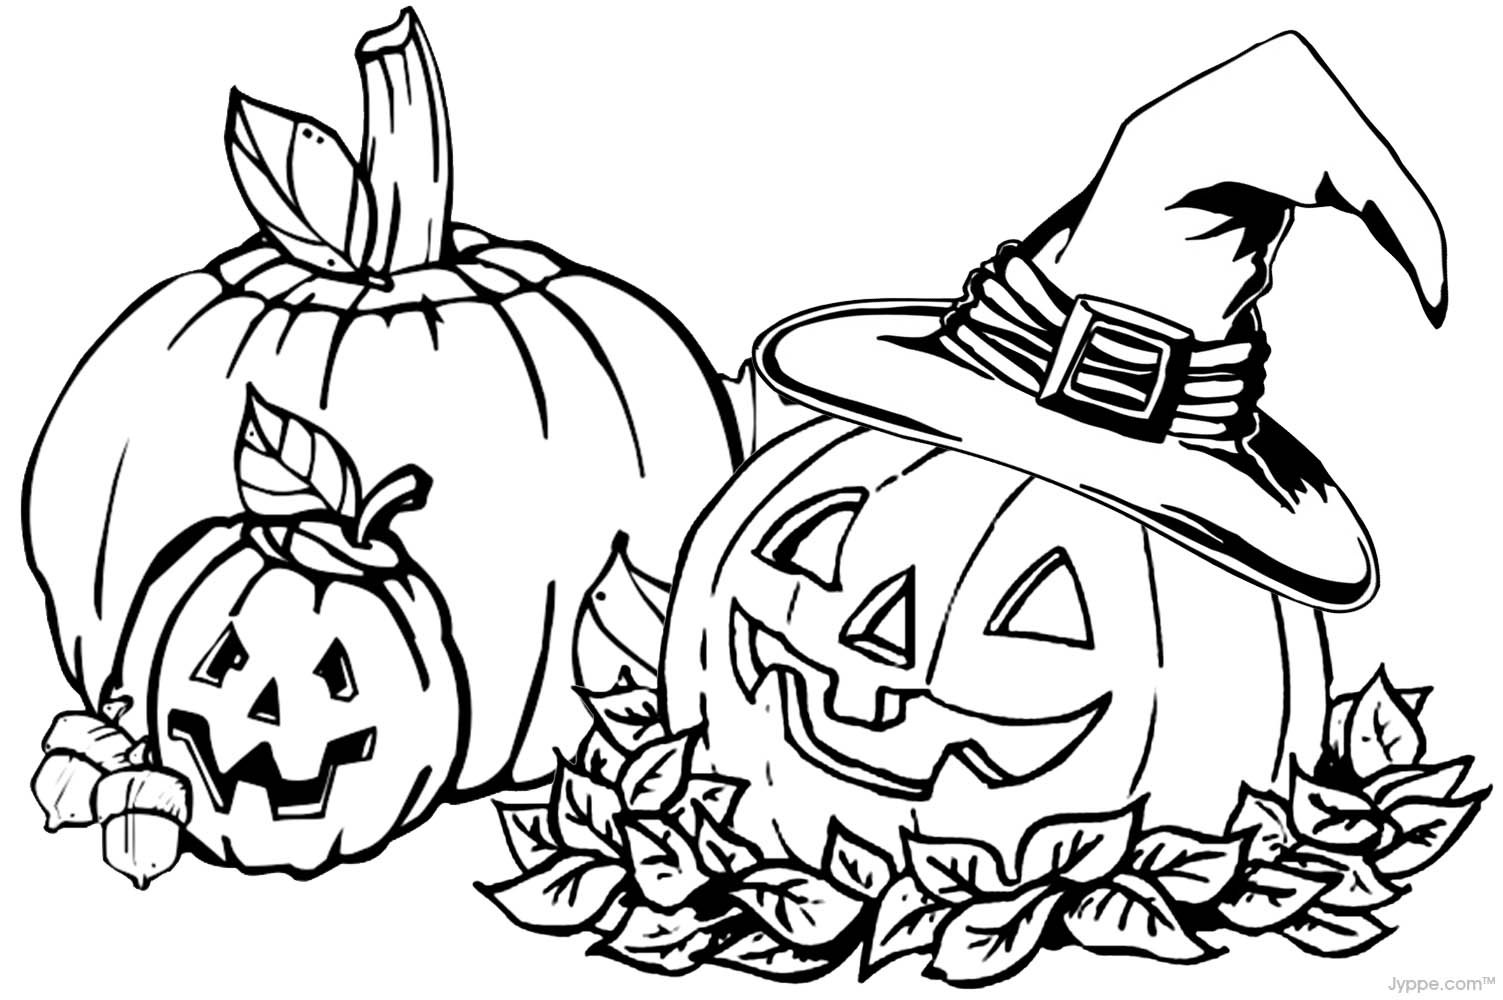 Pumpkin Drawing For Kids at GetDrawings.com | Free for personal use ...